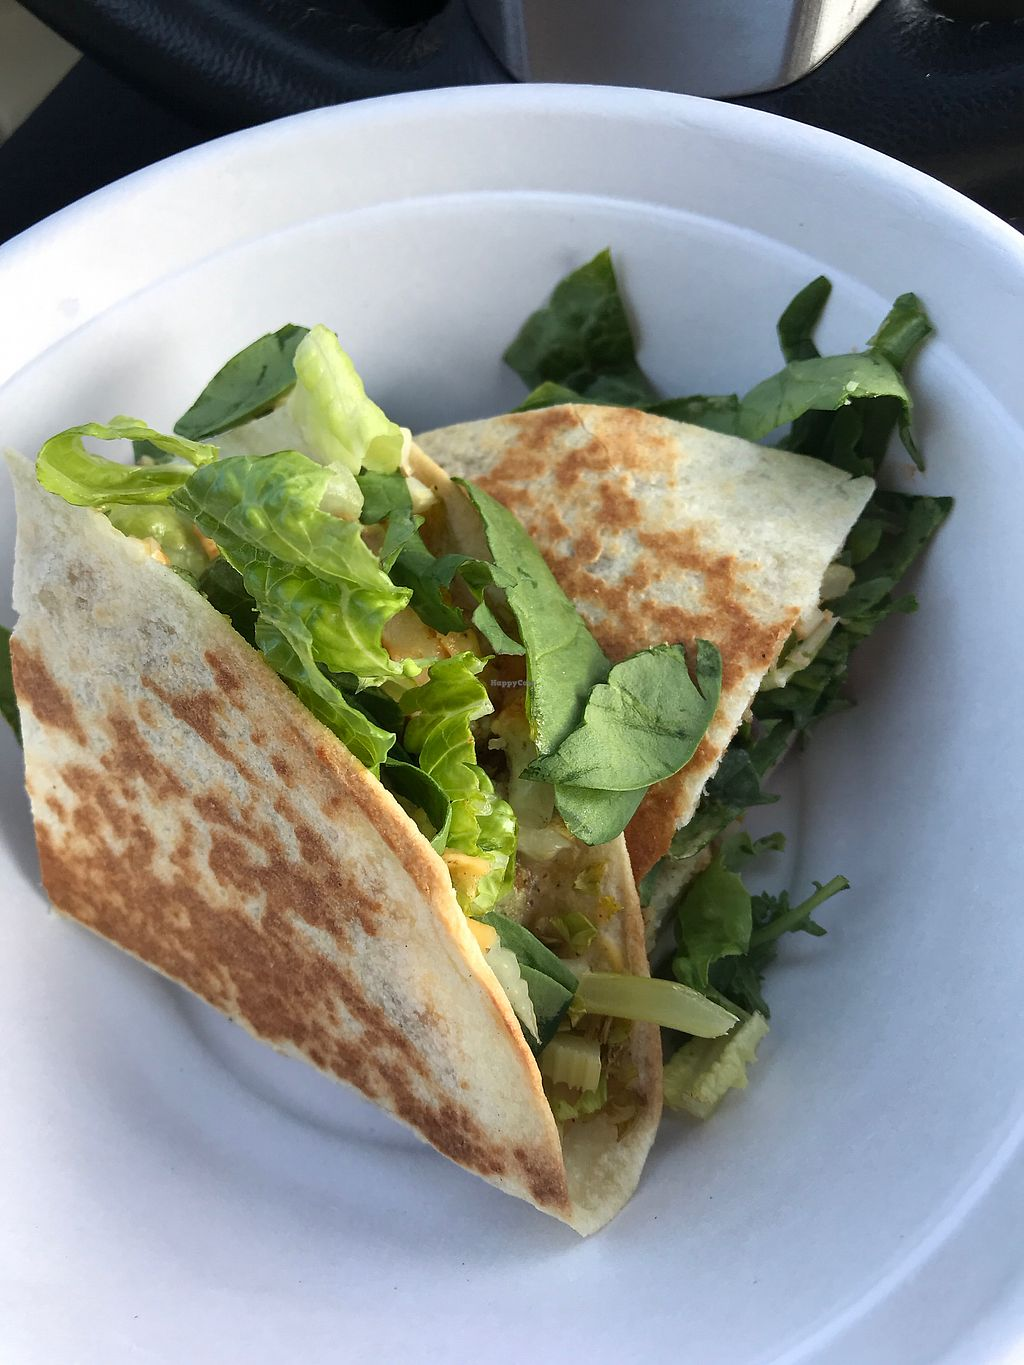 """Photo of Brightside Kitchen  by <a href=""""/members/profile/carolynmm22"""">carolynmm22</a> <br/>Toasted Piadini: BBQ Sporc <br/> April 10, 2018  - <a href='/contact/abuse/image/112641/383305'>Report</a>"""